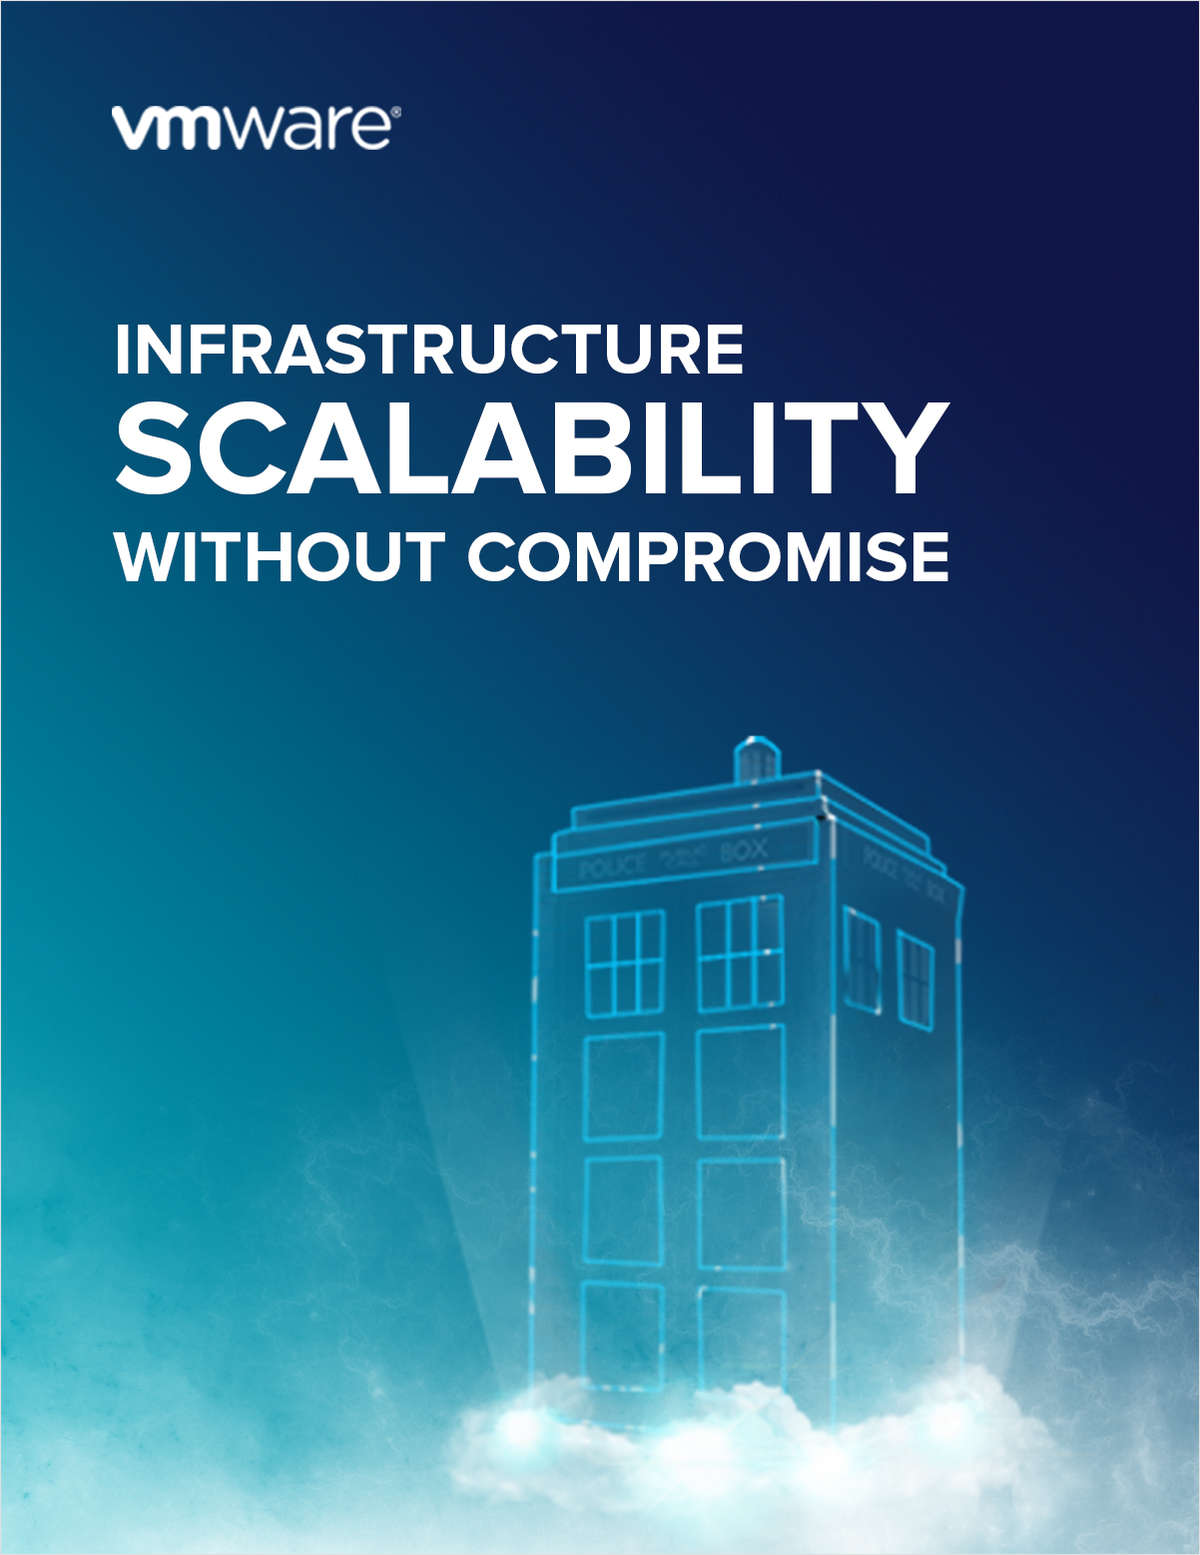 Evolve without risk. Modernise with Hyper Converged IT for infrastructure scalability without compromise.